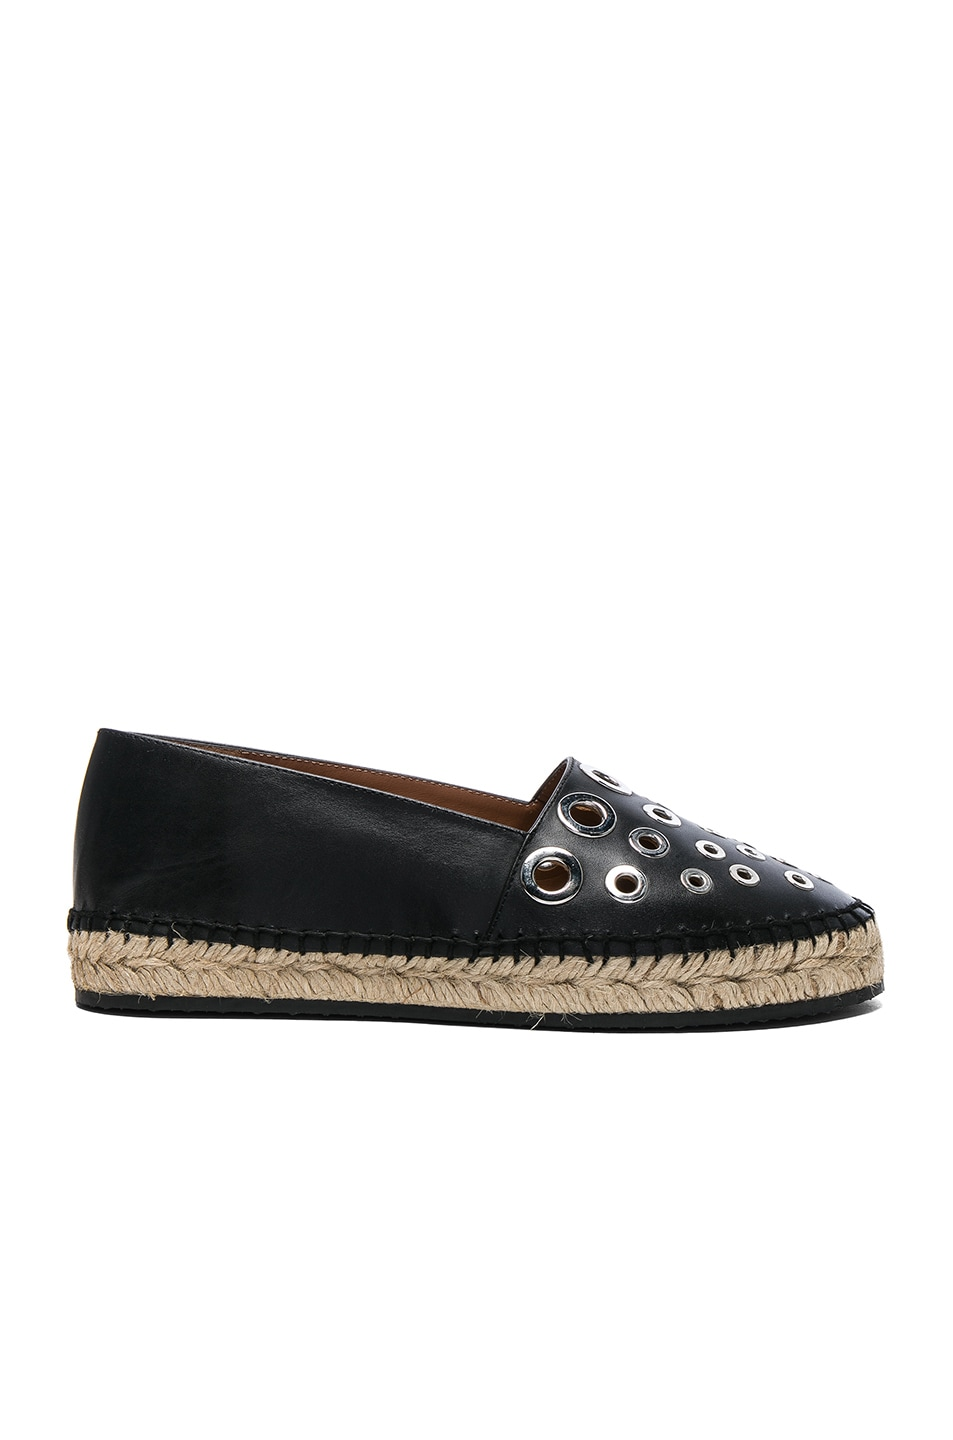 Image 1 of Givenchy Studded Leather Flat Espadrilles in Black